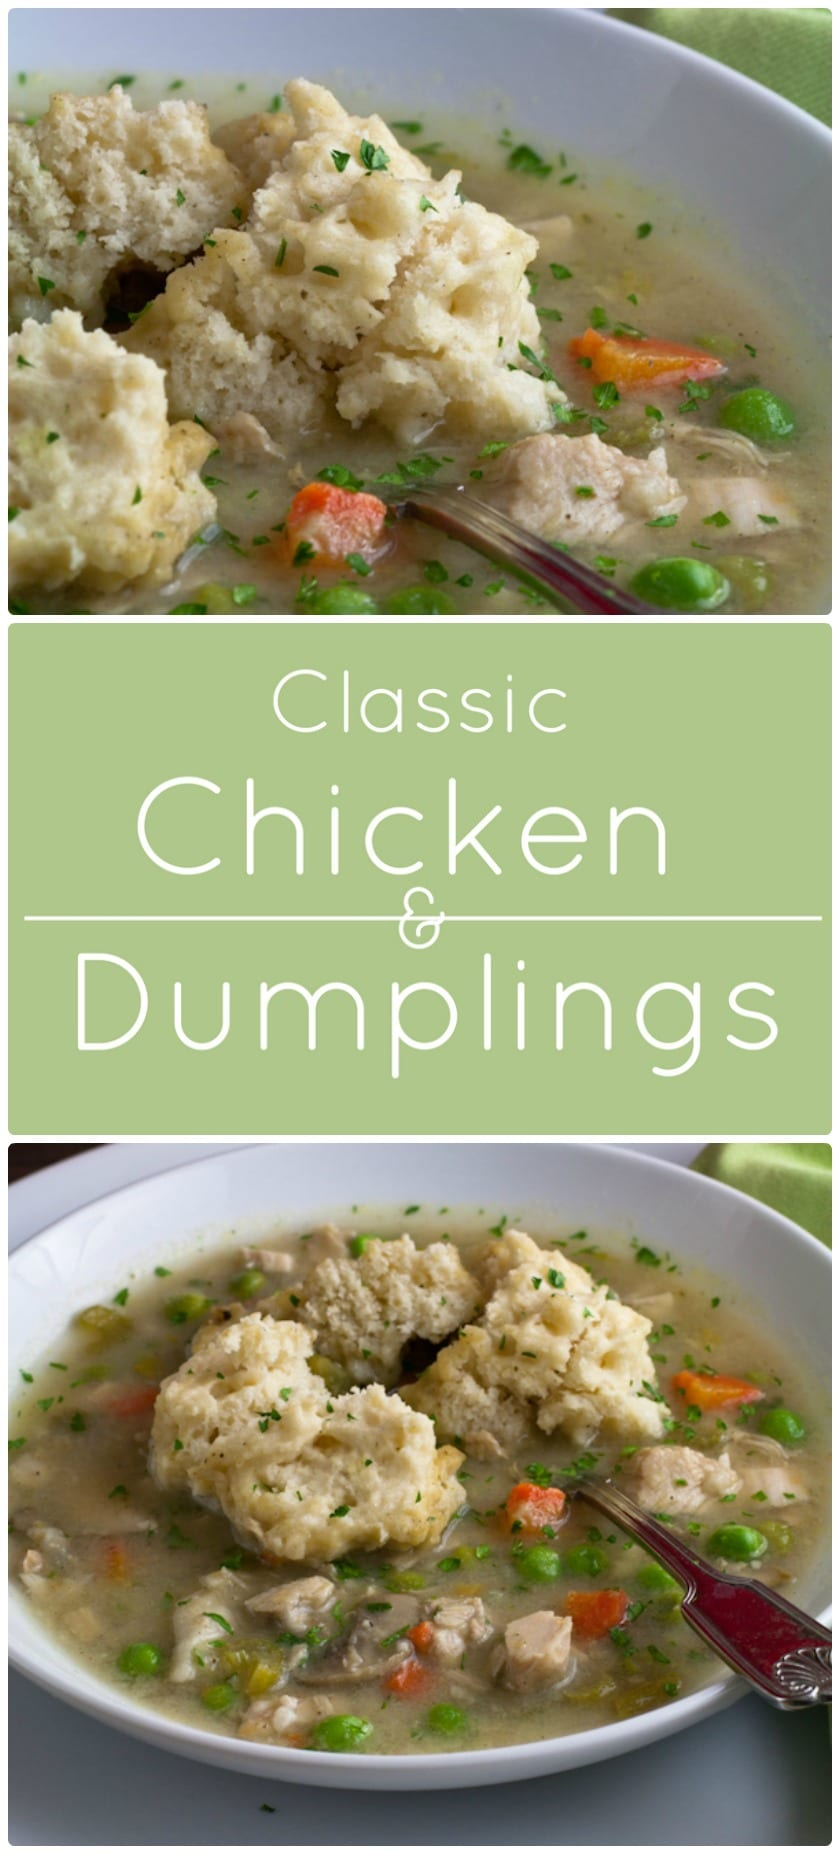 Classic chicken and dumplings. Hearty chicken stew with light and fluffy, from scratch, dumplings.